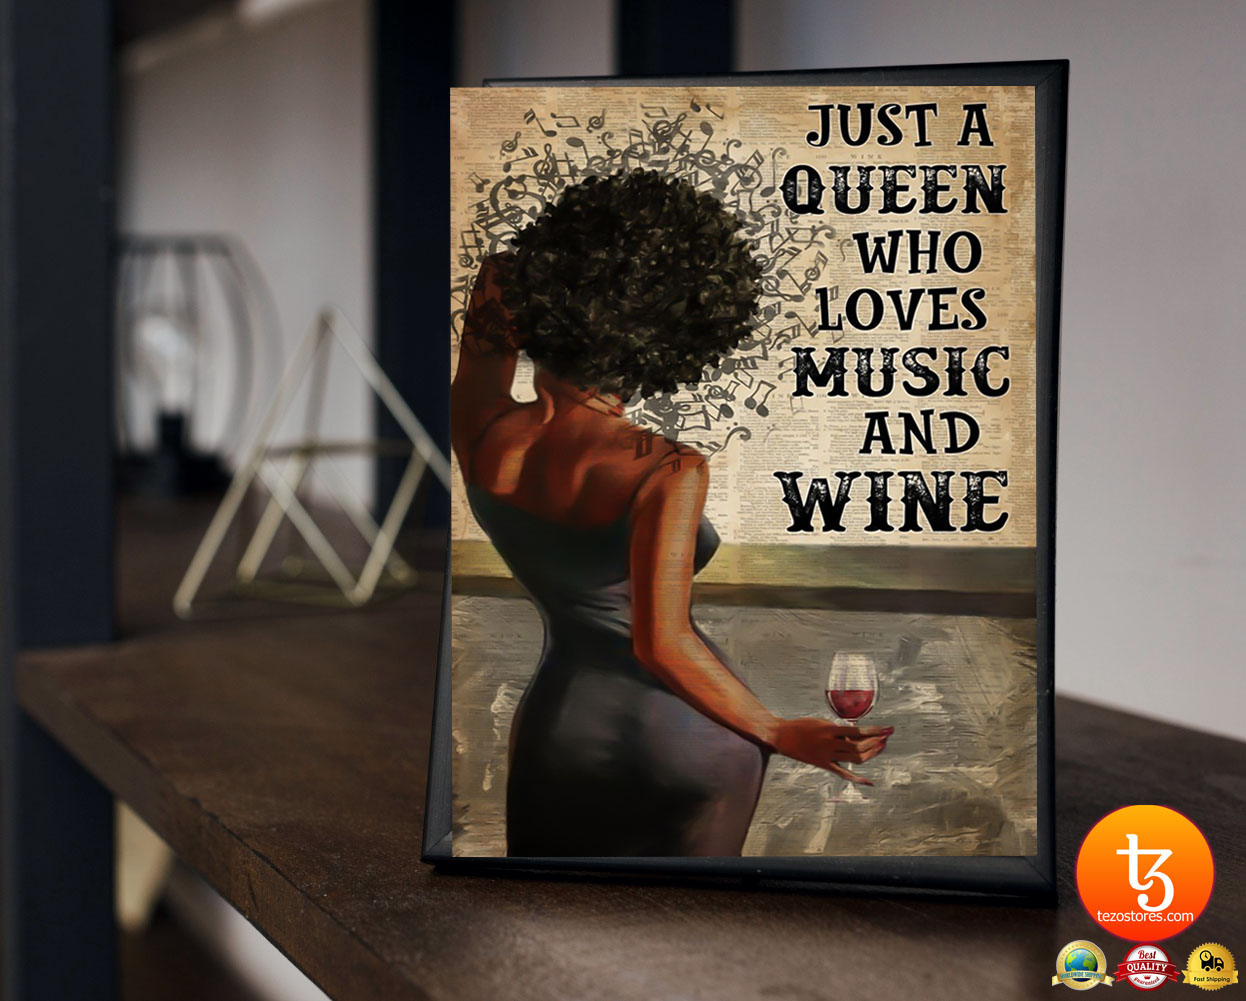 Black girl Just a queen who loves music and wine poster